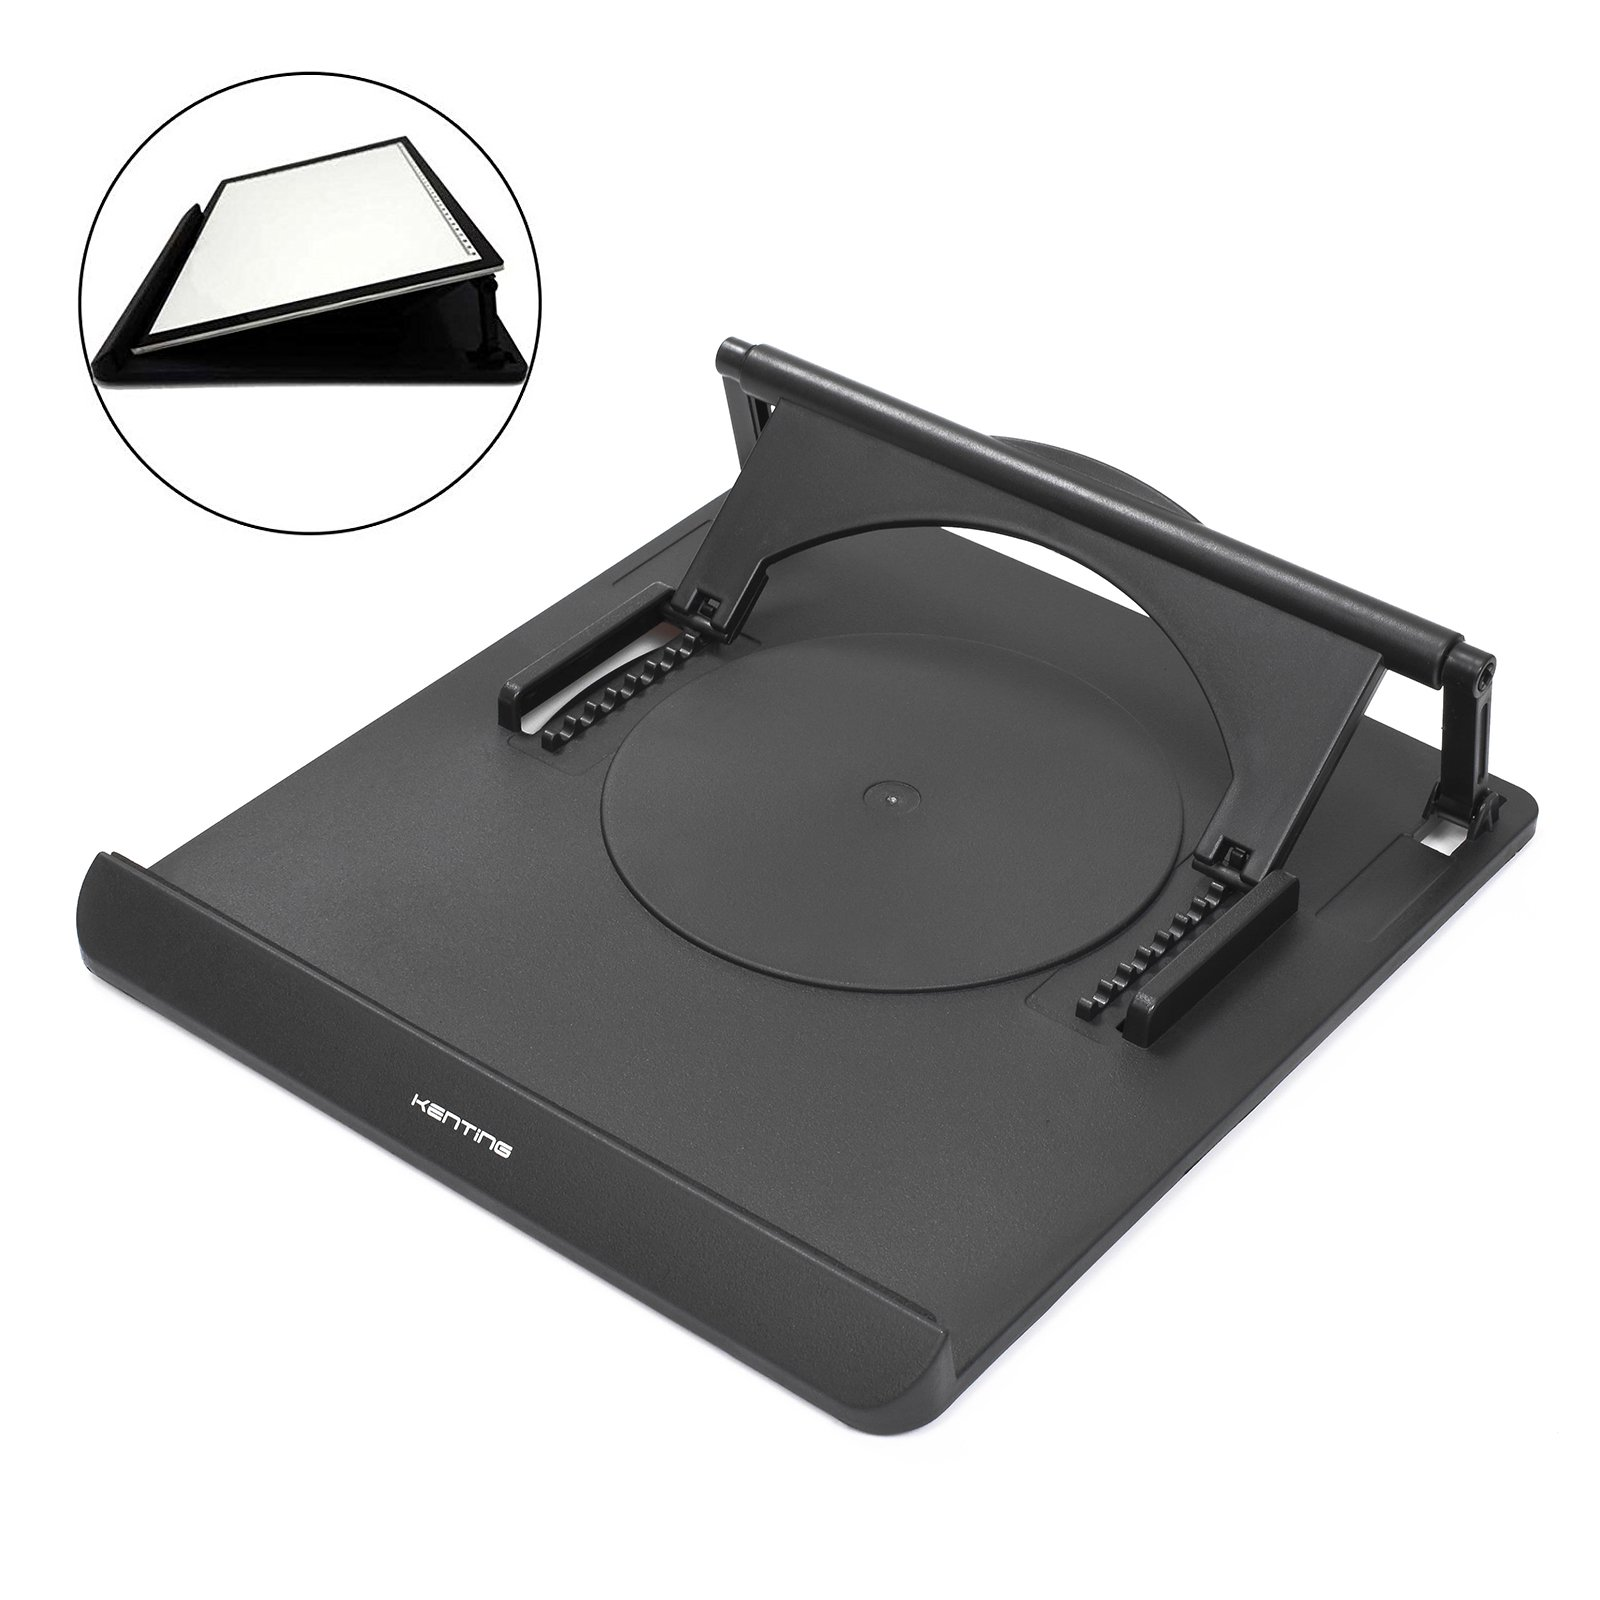 Kenting Light Box Pad Stand, 9-Angle Adjustable Tablet Stand Portable Laptop Stand Rotate in 360 Degree Foldable Holder for Tracing Pad / Laptop / Tablet / Notebook